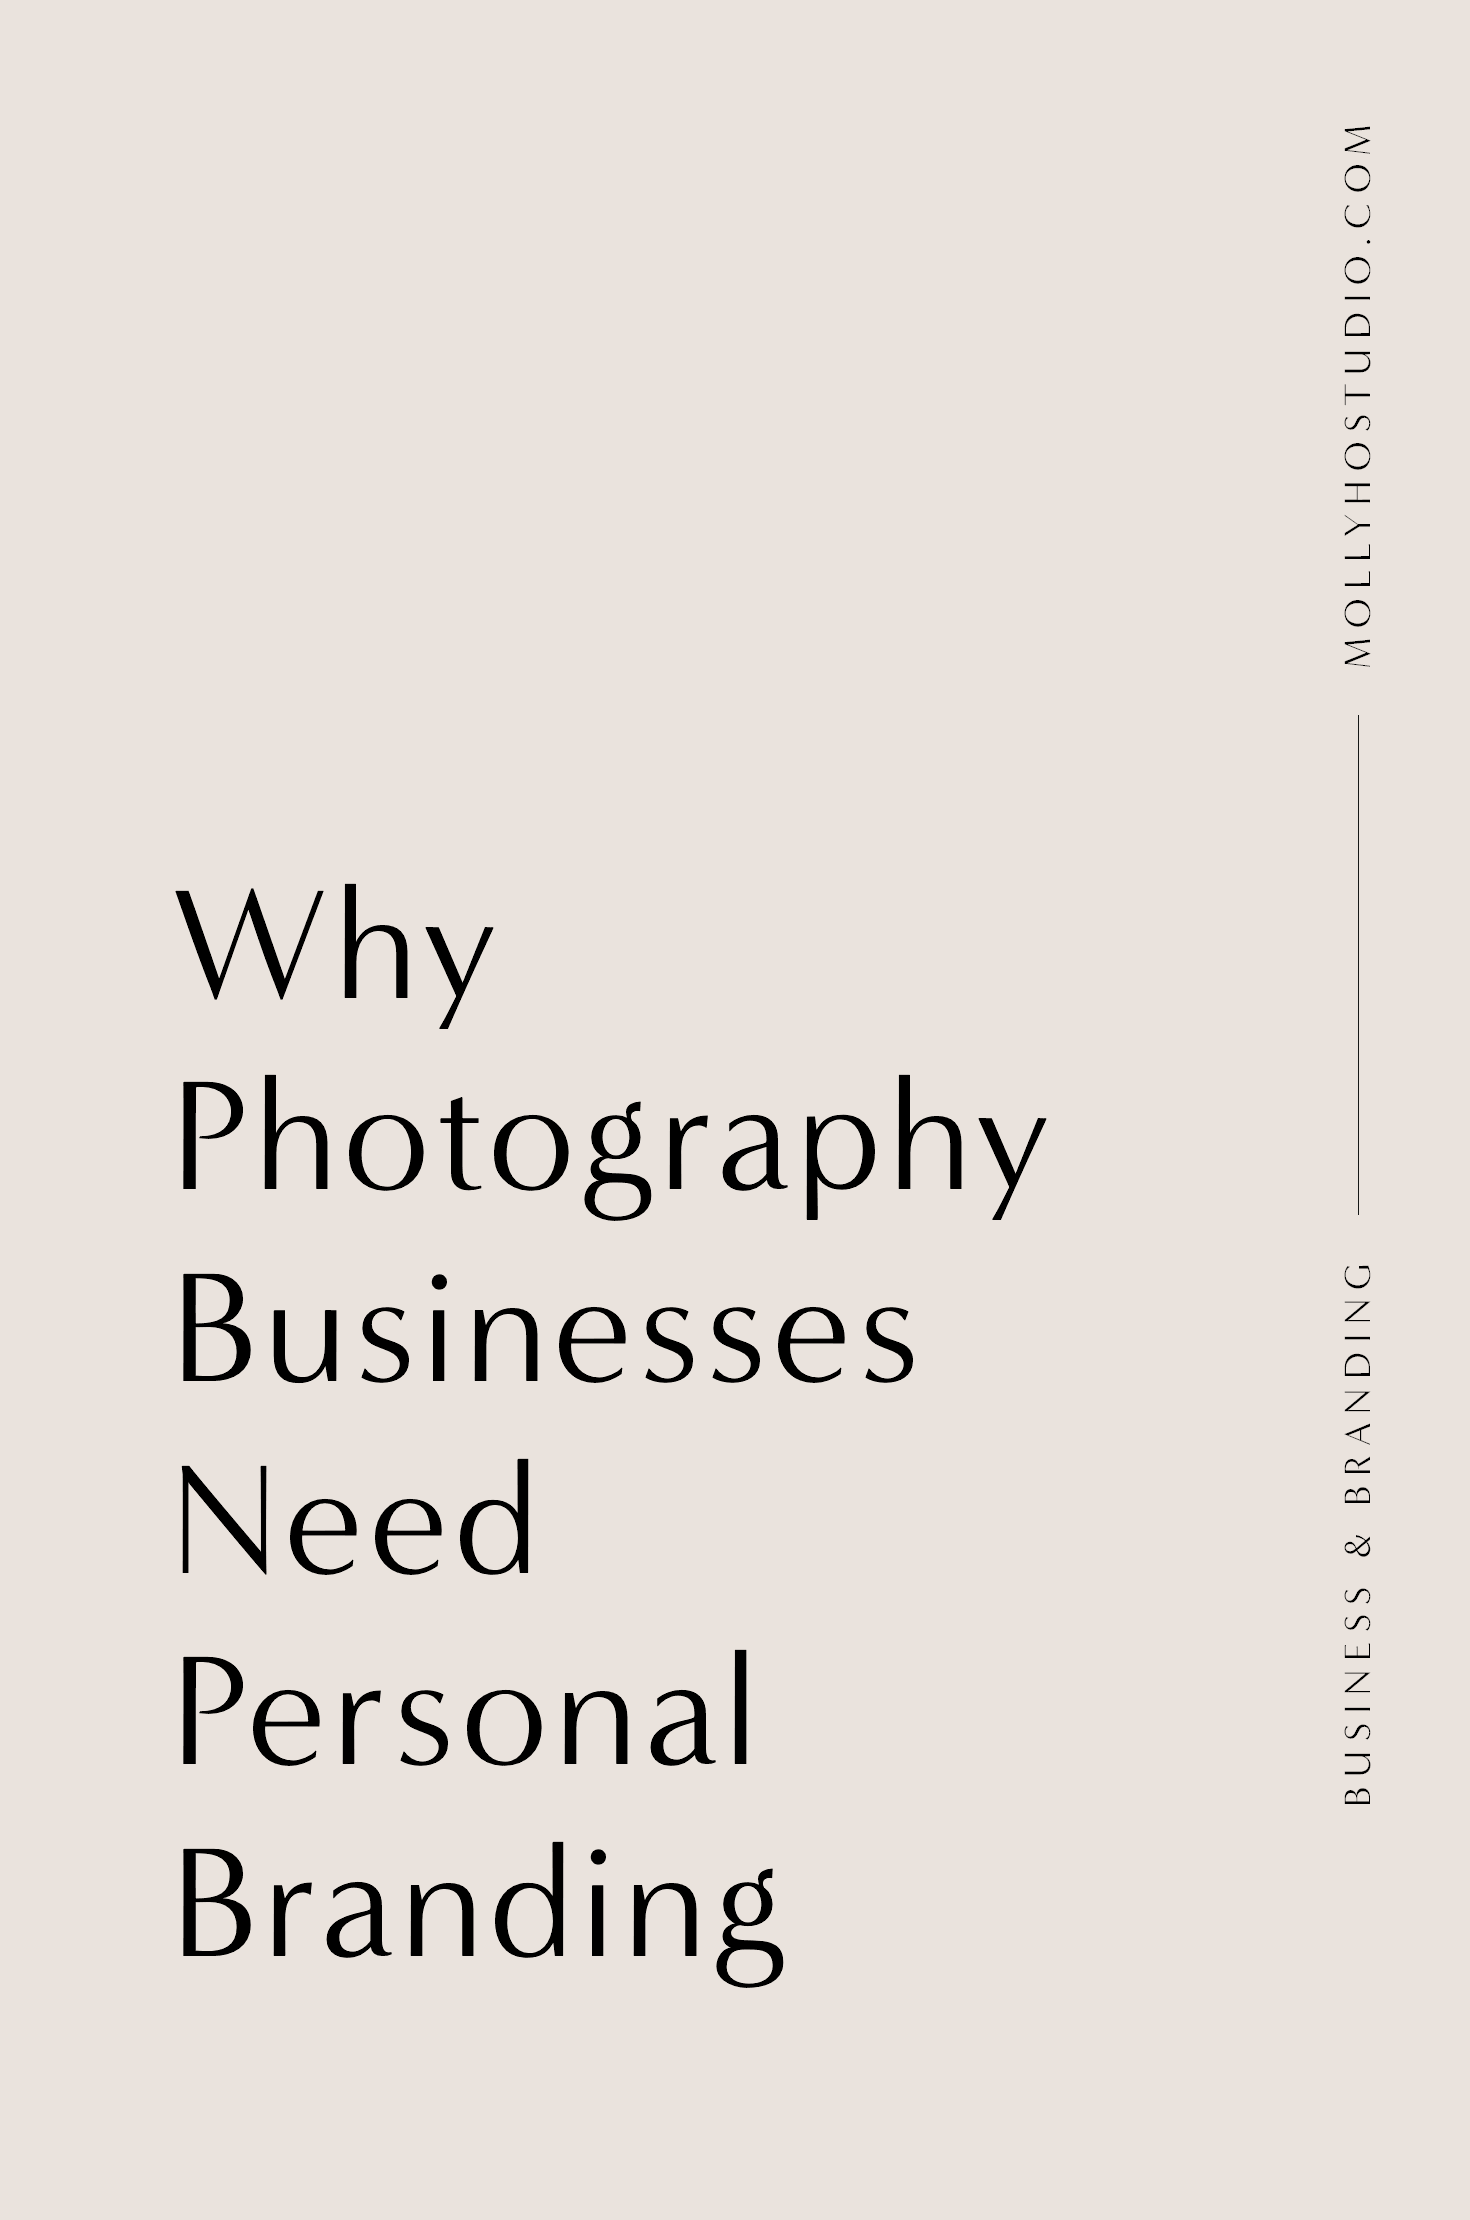 Why Photographers Need To Build A Personal Brand | Branding and Marketing Tips for Photographers | How To Start A Photography Business | Building A Personal Brand | Growing Your Photography Business | How To Set Yourself Apart In An Oversaturated Market | Getting More Photography Clients | Molly Ho Studio